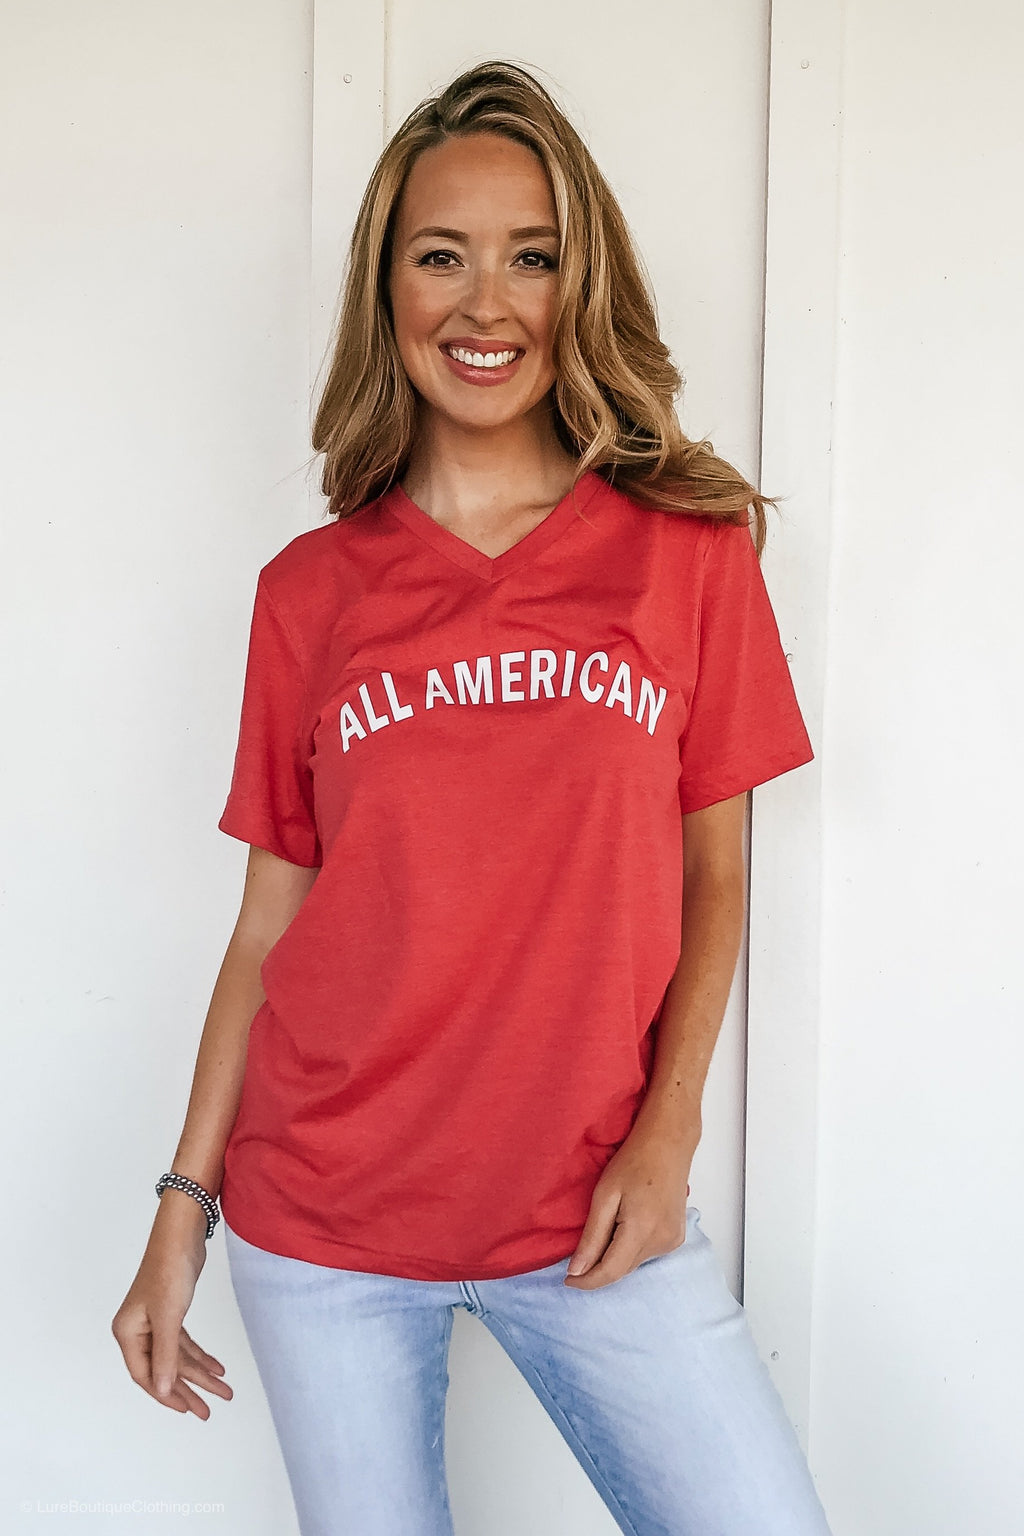 ALL AMERICAN Tee - LURE Boutique